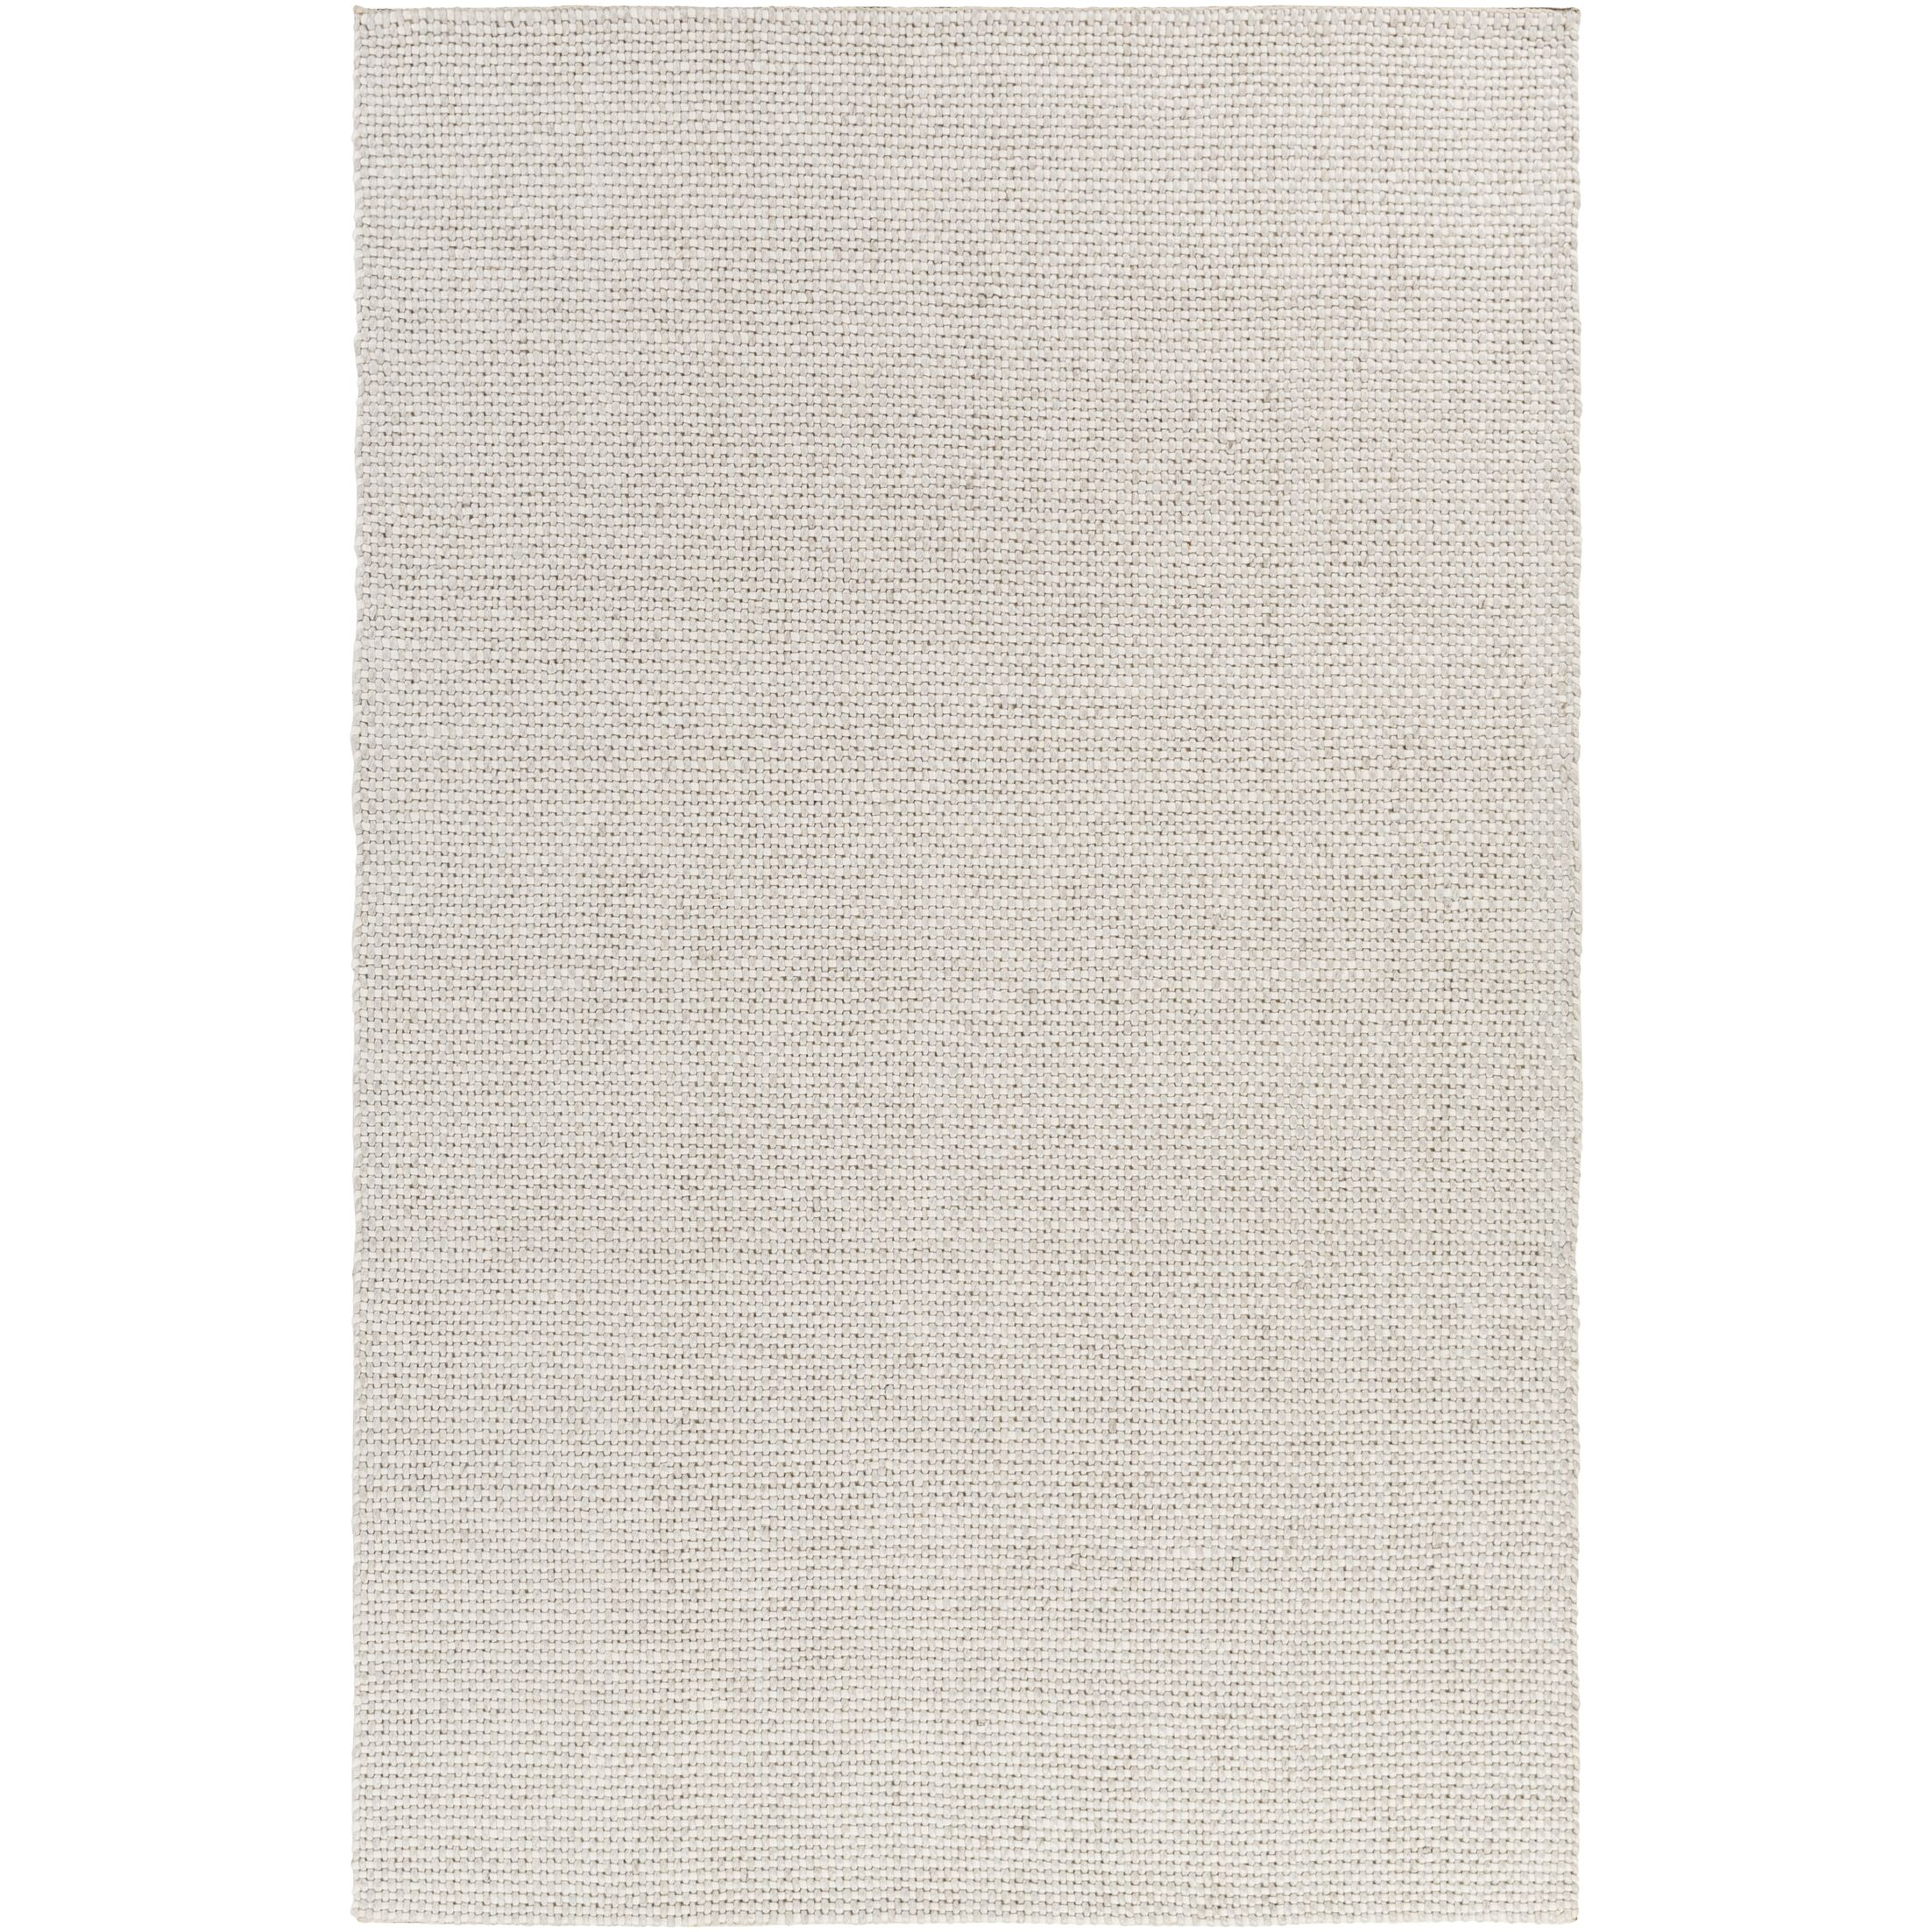 Haysville Hand-Woven Light Gray Area Rug Rug Size: Rectangle 3'3